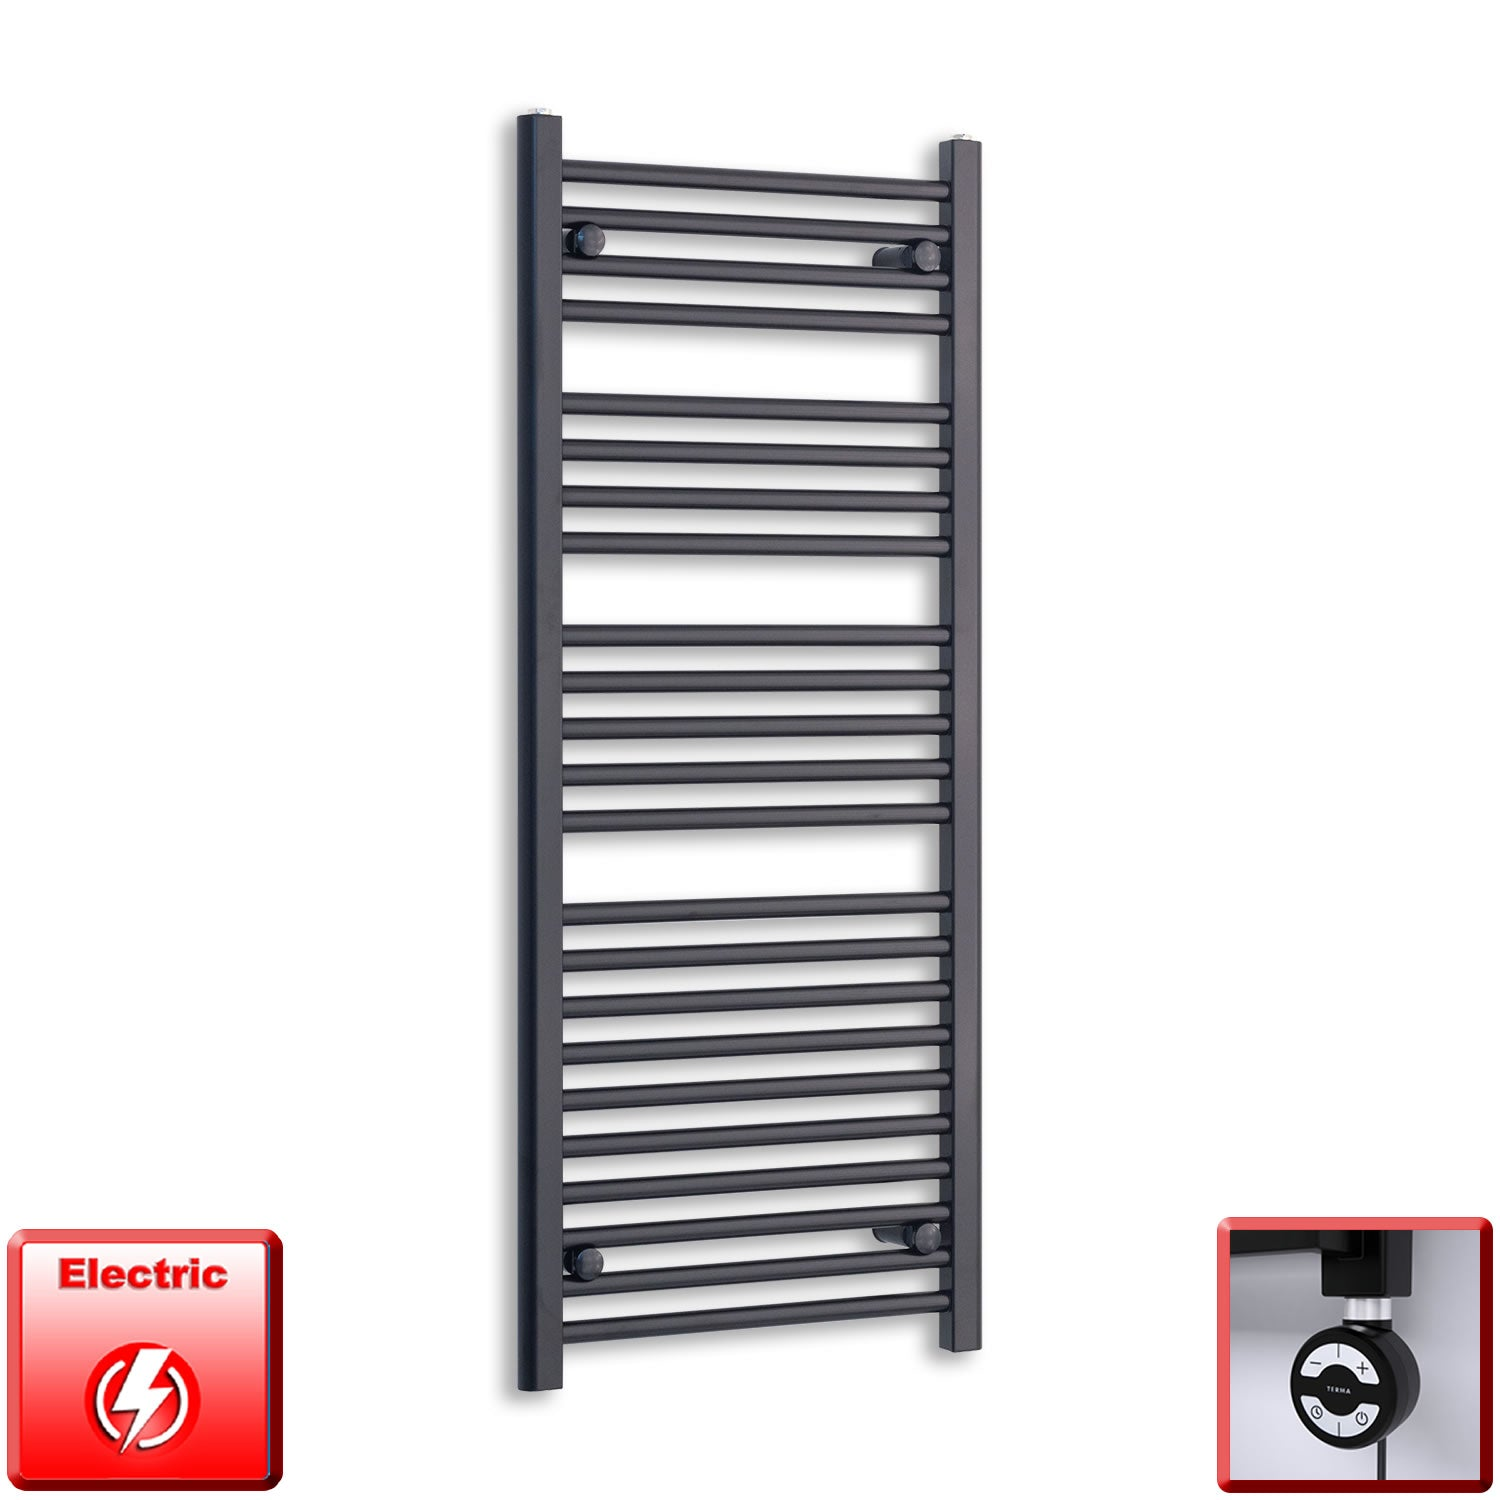 600mm Wide 1200mm High Pre-Filled Black Electric Towel Rail Radiator With Thermostatic MOA Element